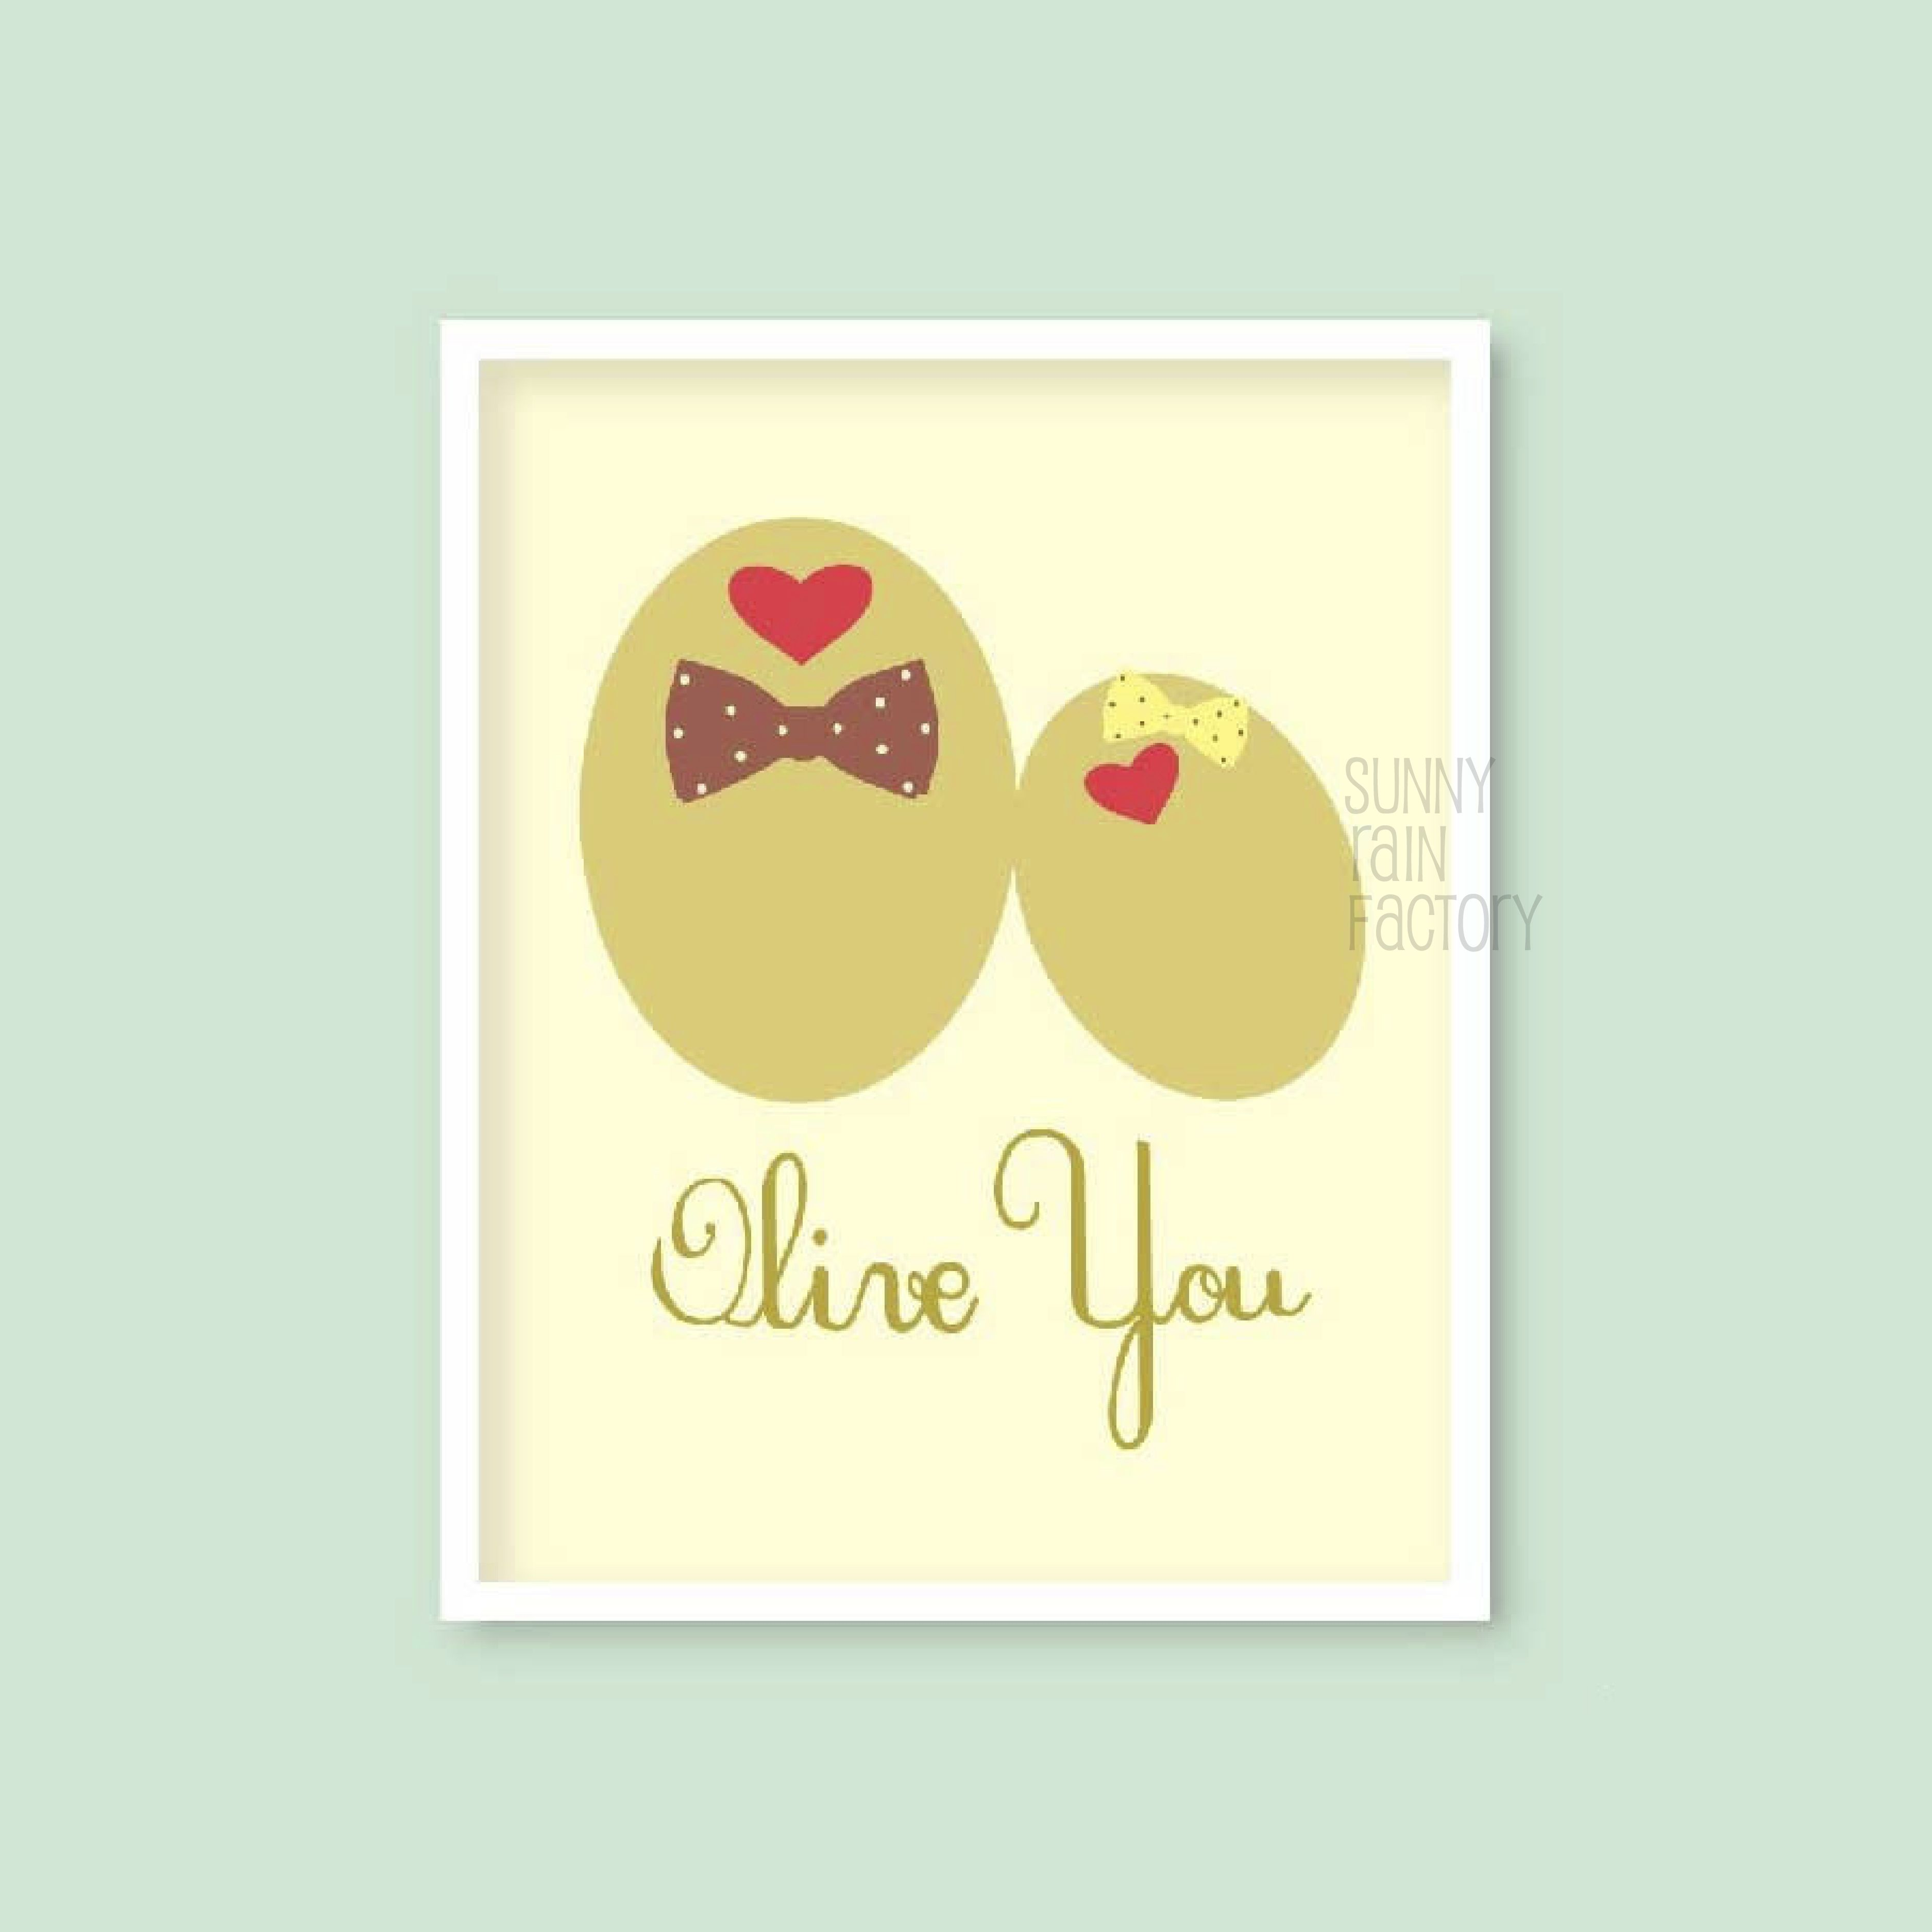 olive you valentine card PRINTABLE him her cute funny anniversary ...